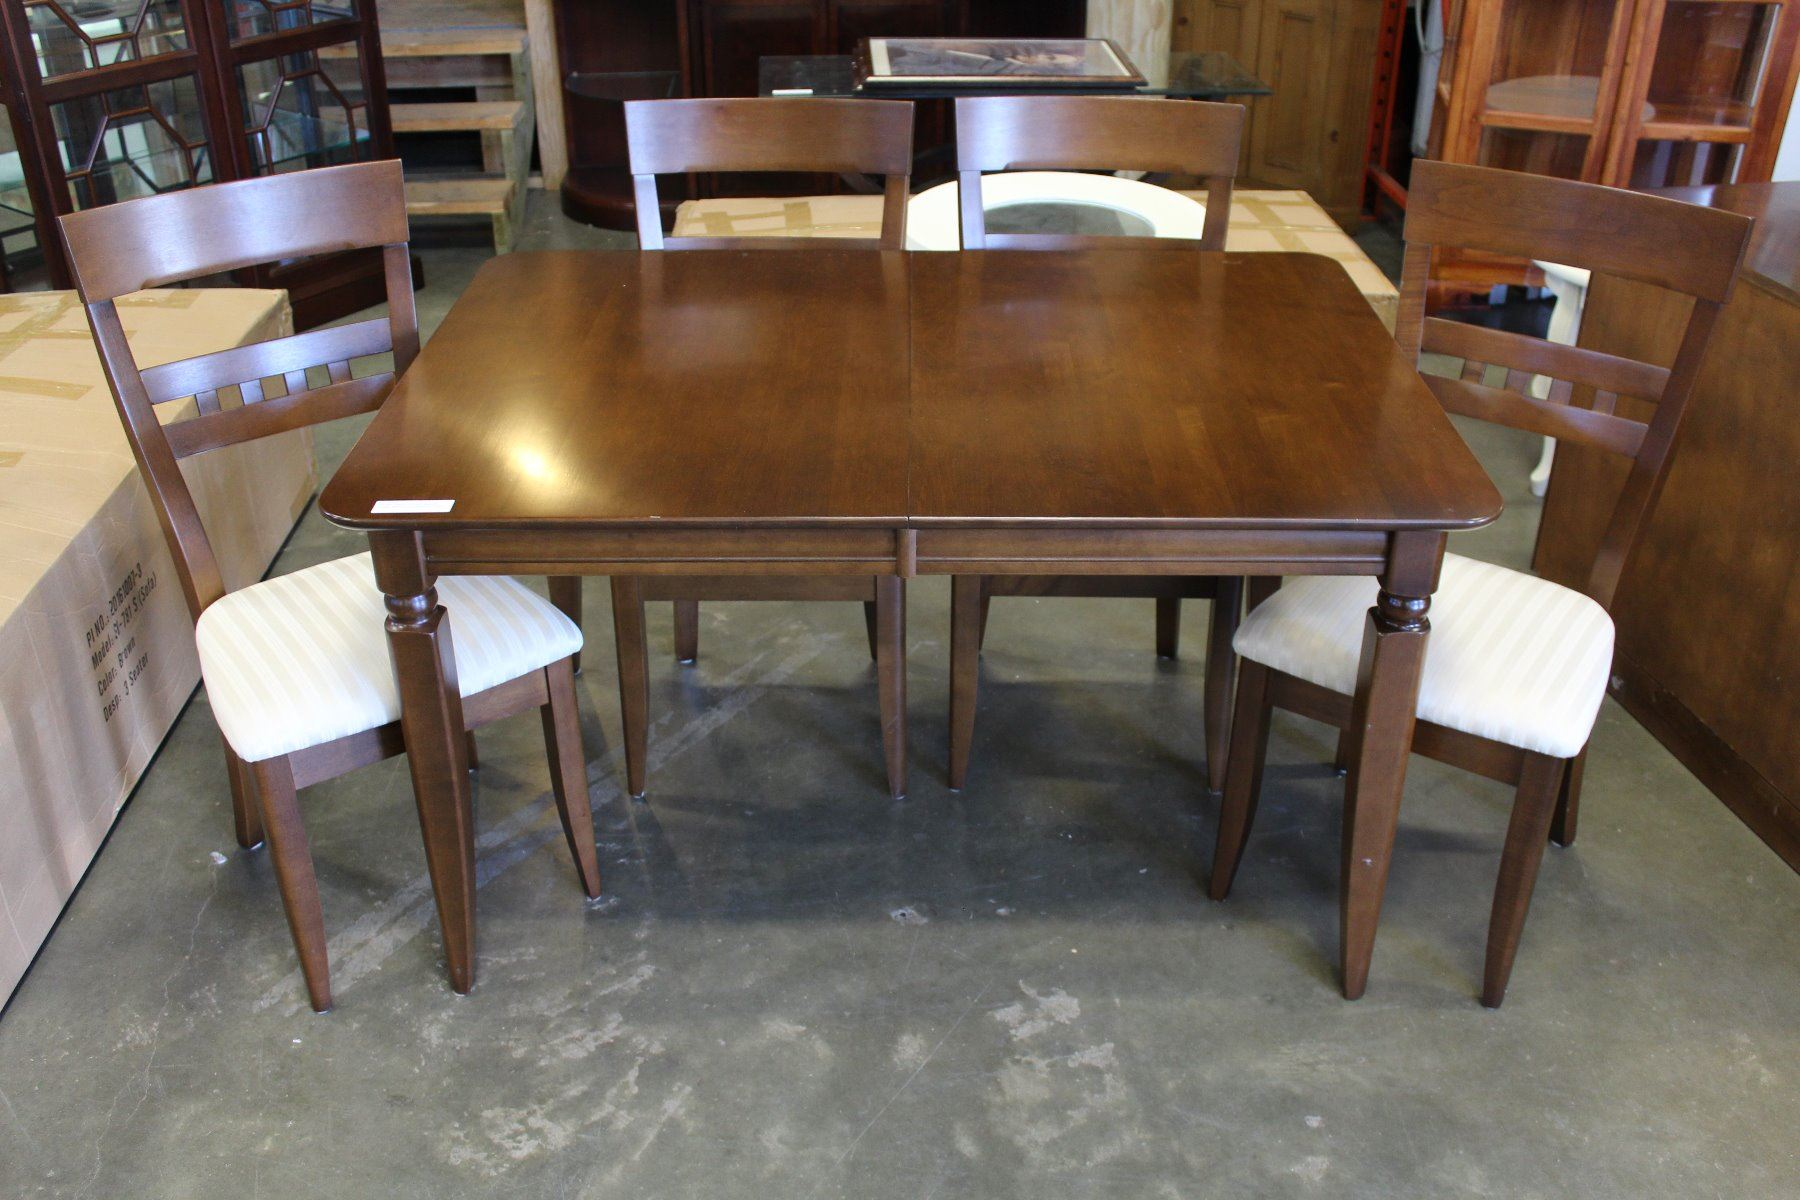 Image 2 ROXTON TEMPLE STUART MODERN DINING TABLE 4 CHAIRS LEAF